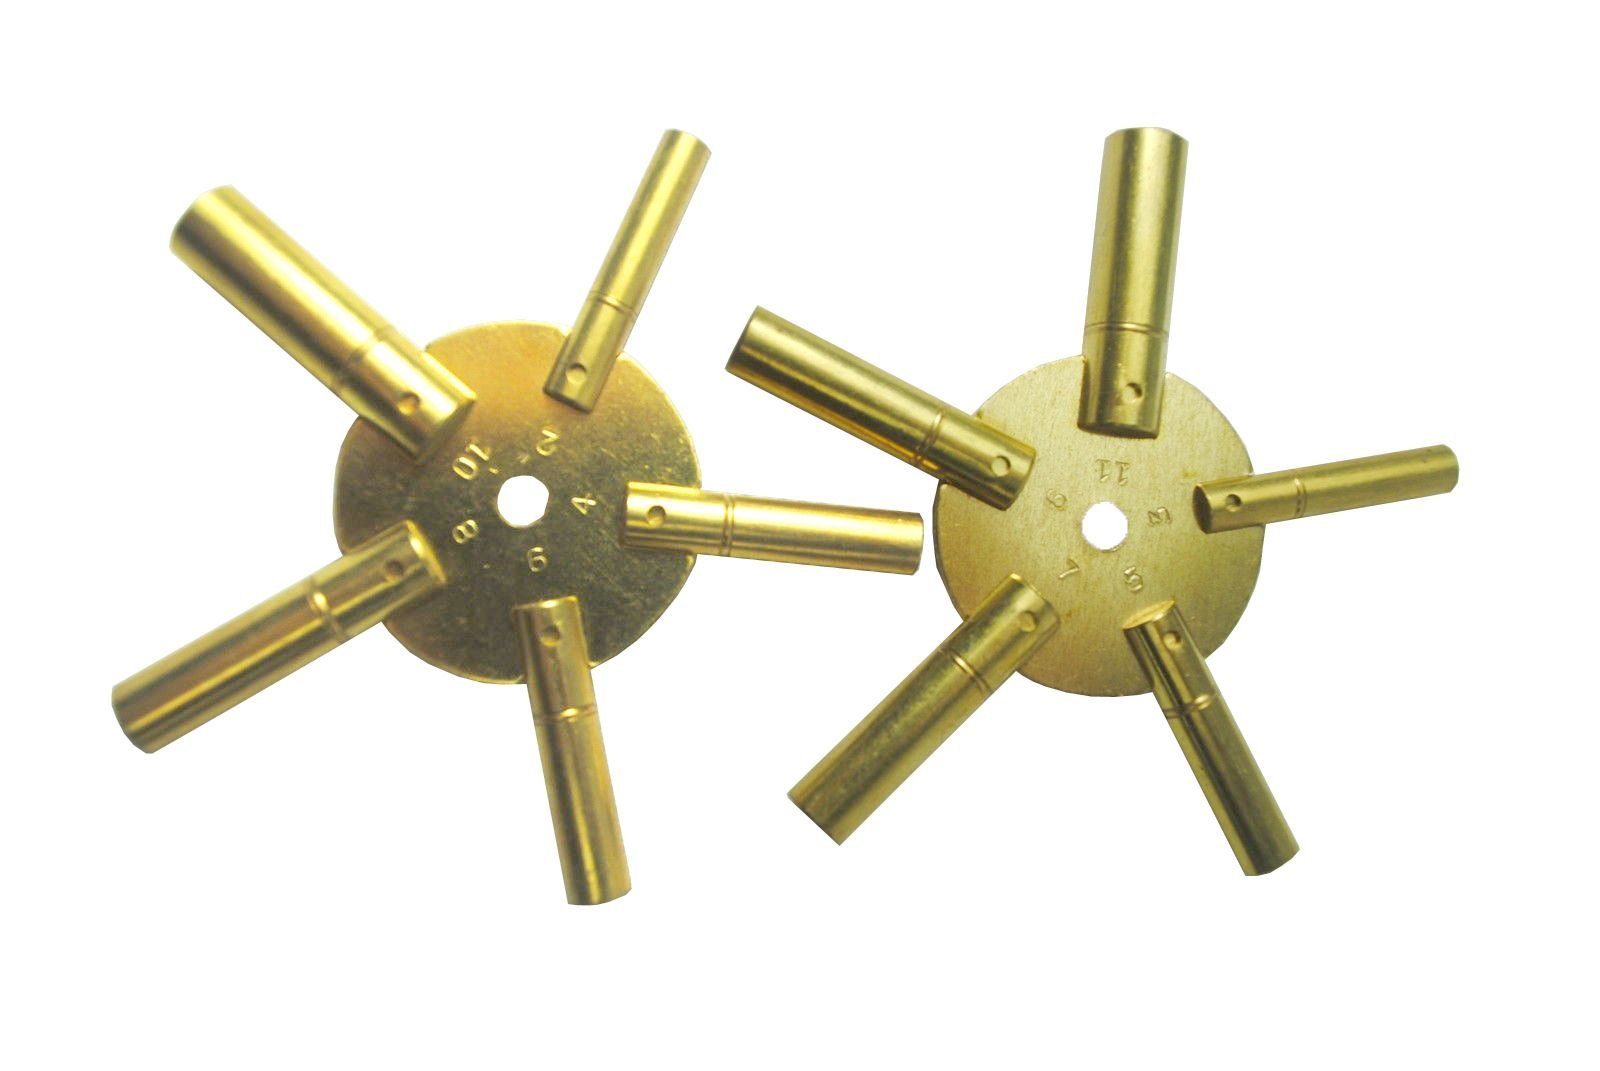 Brass Blessing 5 Prong Brass Clock Key for Winding Clocks, Odd and Even Numbers, 2 Piece from (5025)